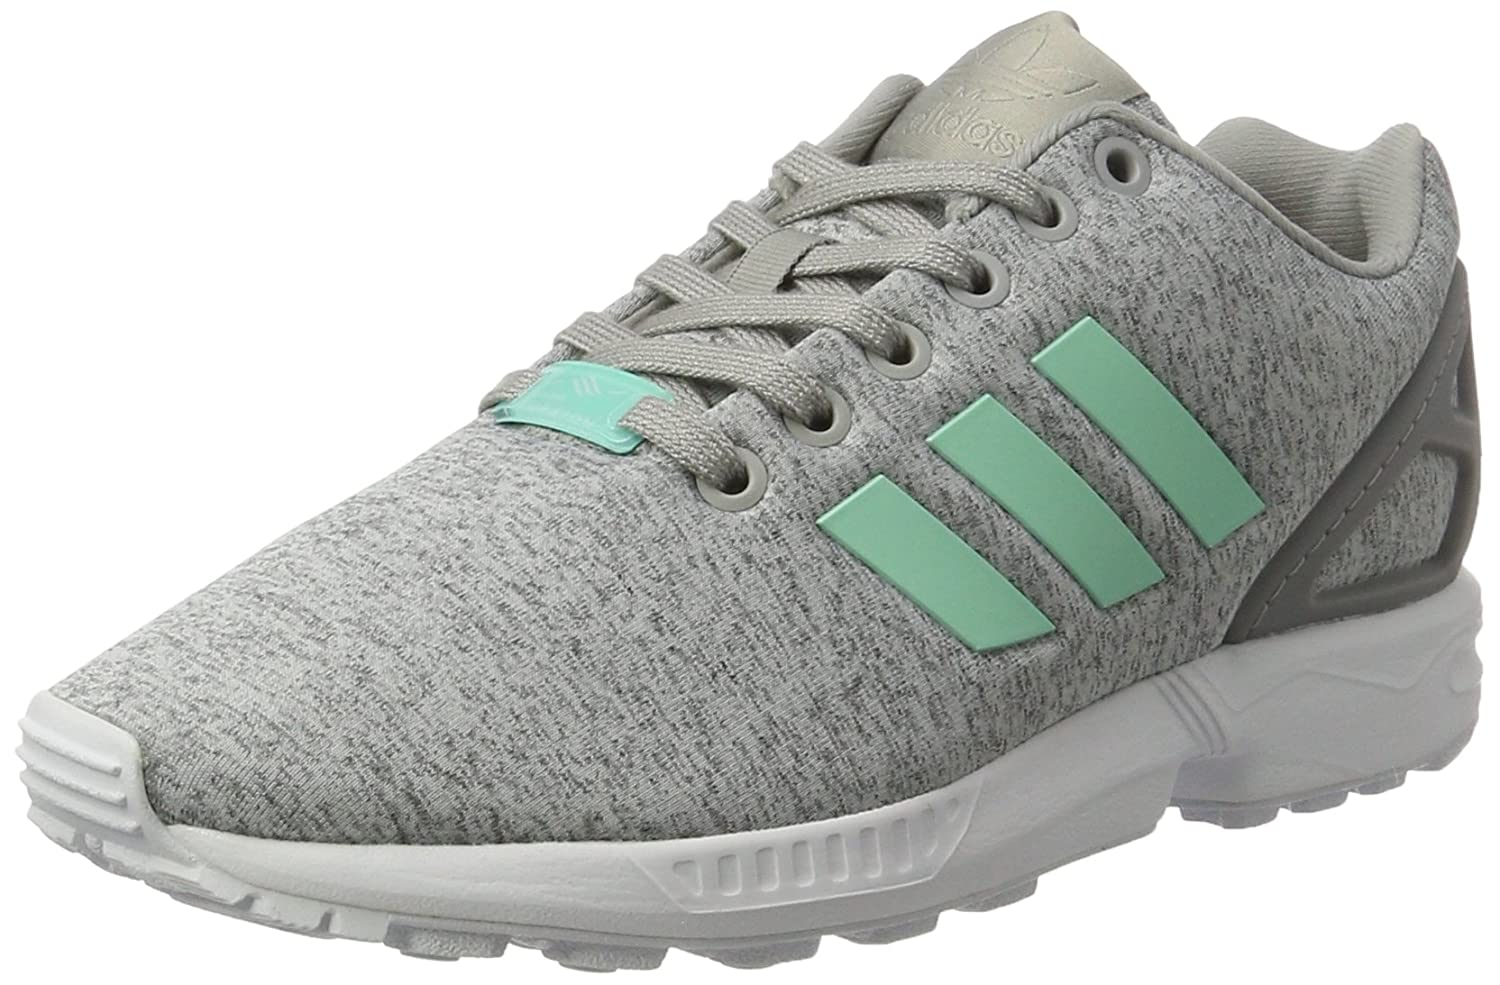 brand new 3bbae b2f3f adidas Damen ZX Flux Sneakers 36 23 EUGrau (Medium Grey HeatherEasy  MintFtwr White) - associate-degree.de